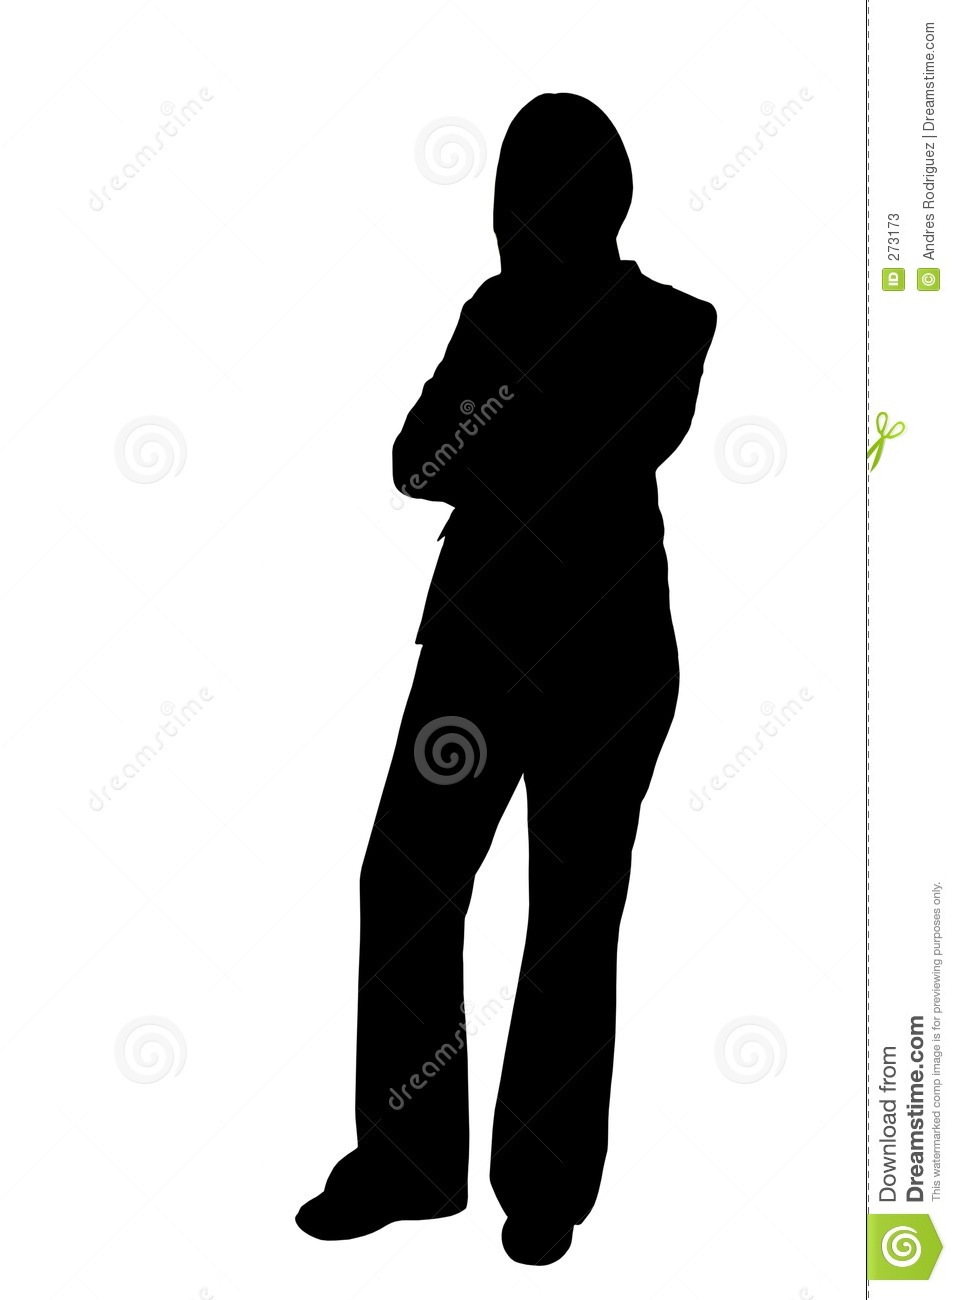 Stock photos business woman standing silhouette illustration